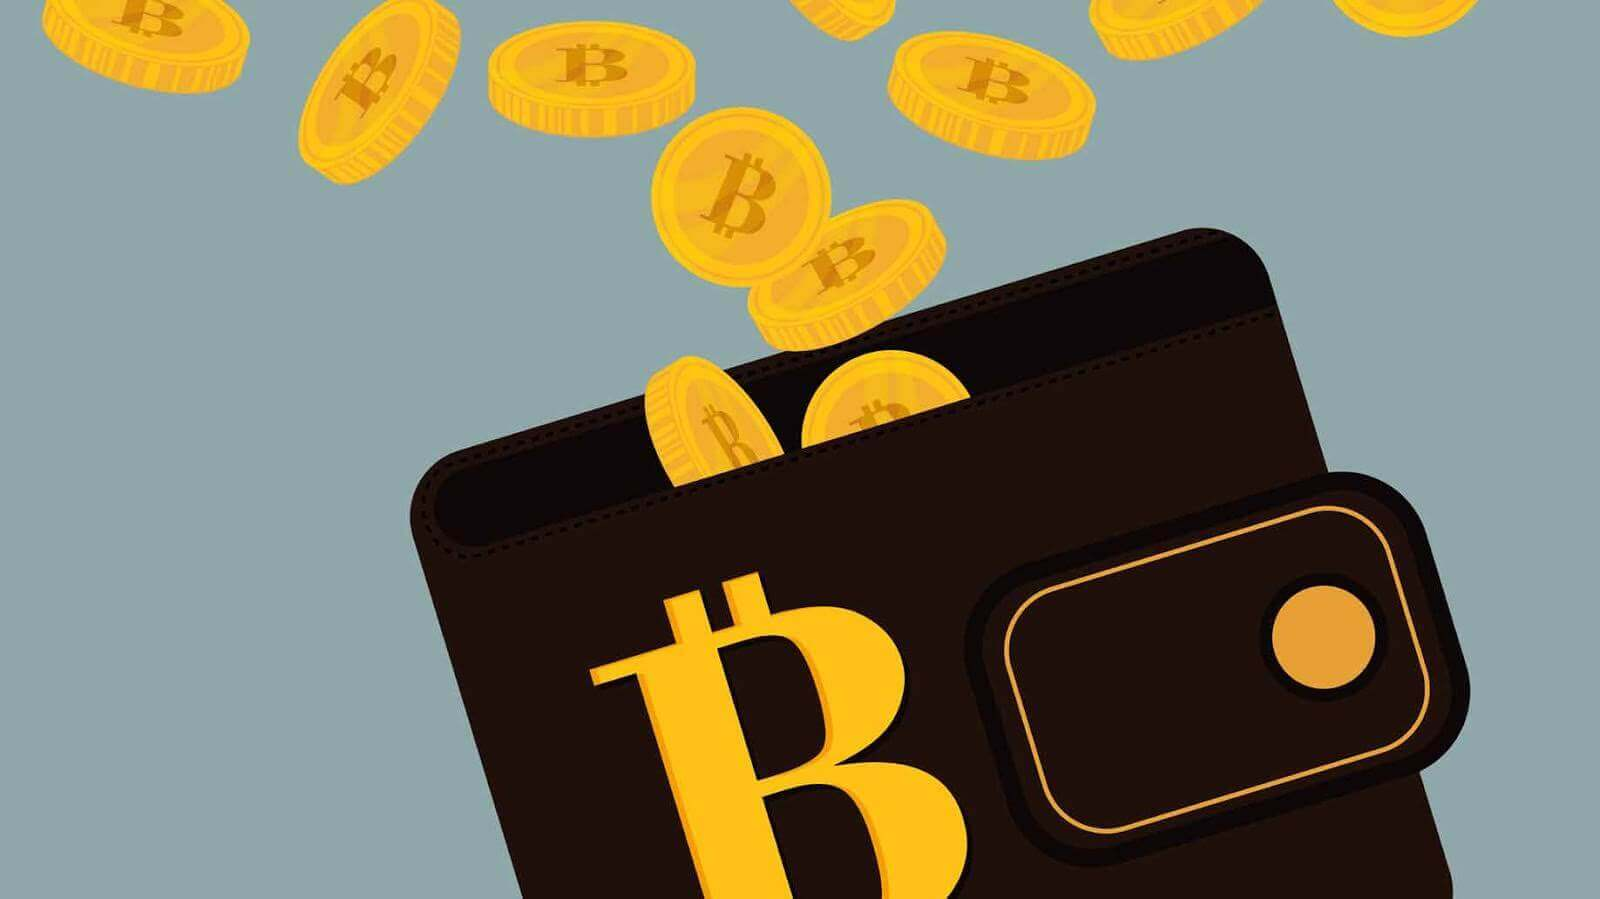 Store bitcoins in your wallet